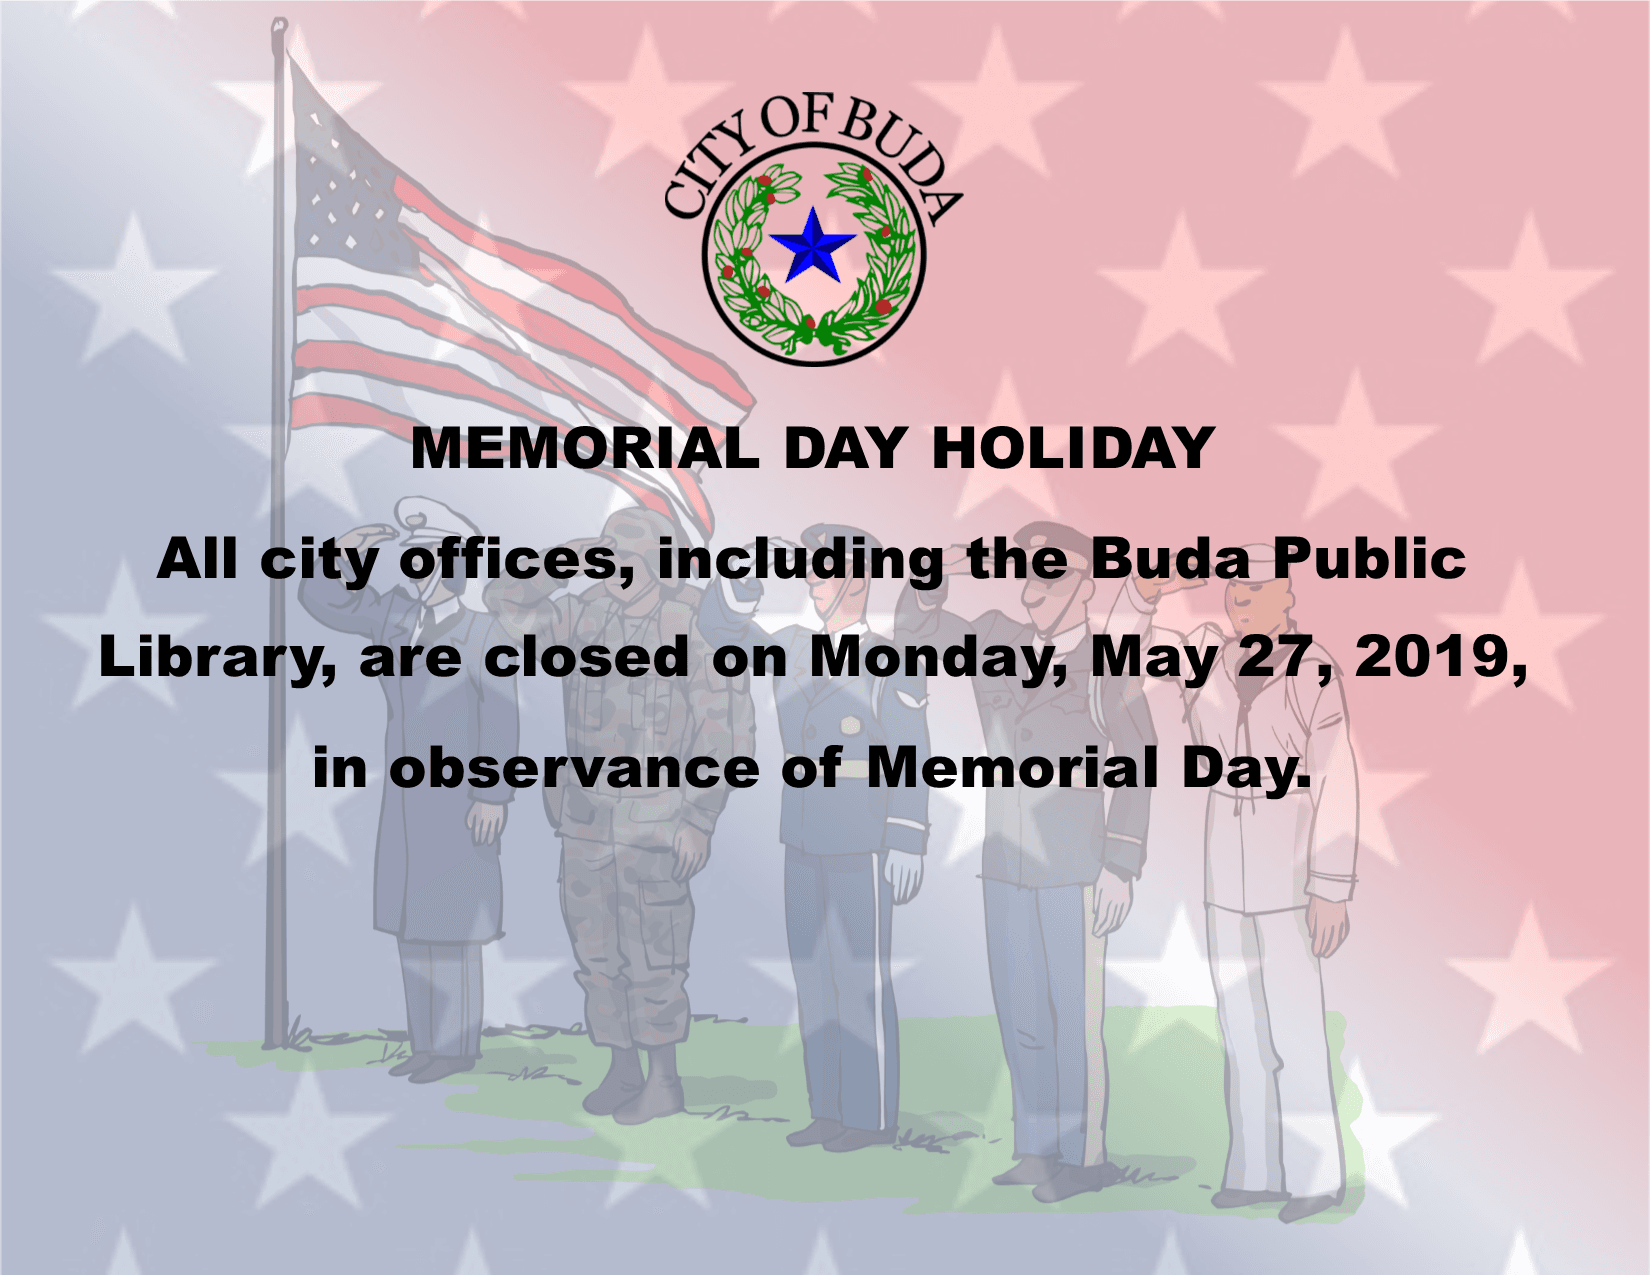 Memorial Day Holiday 2019